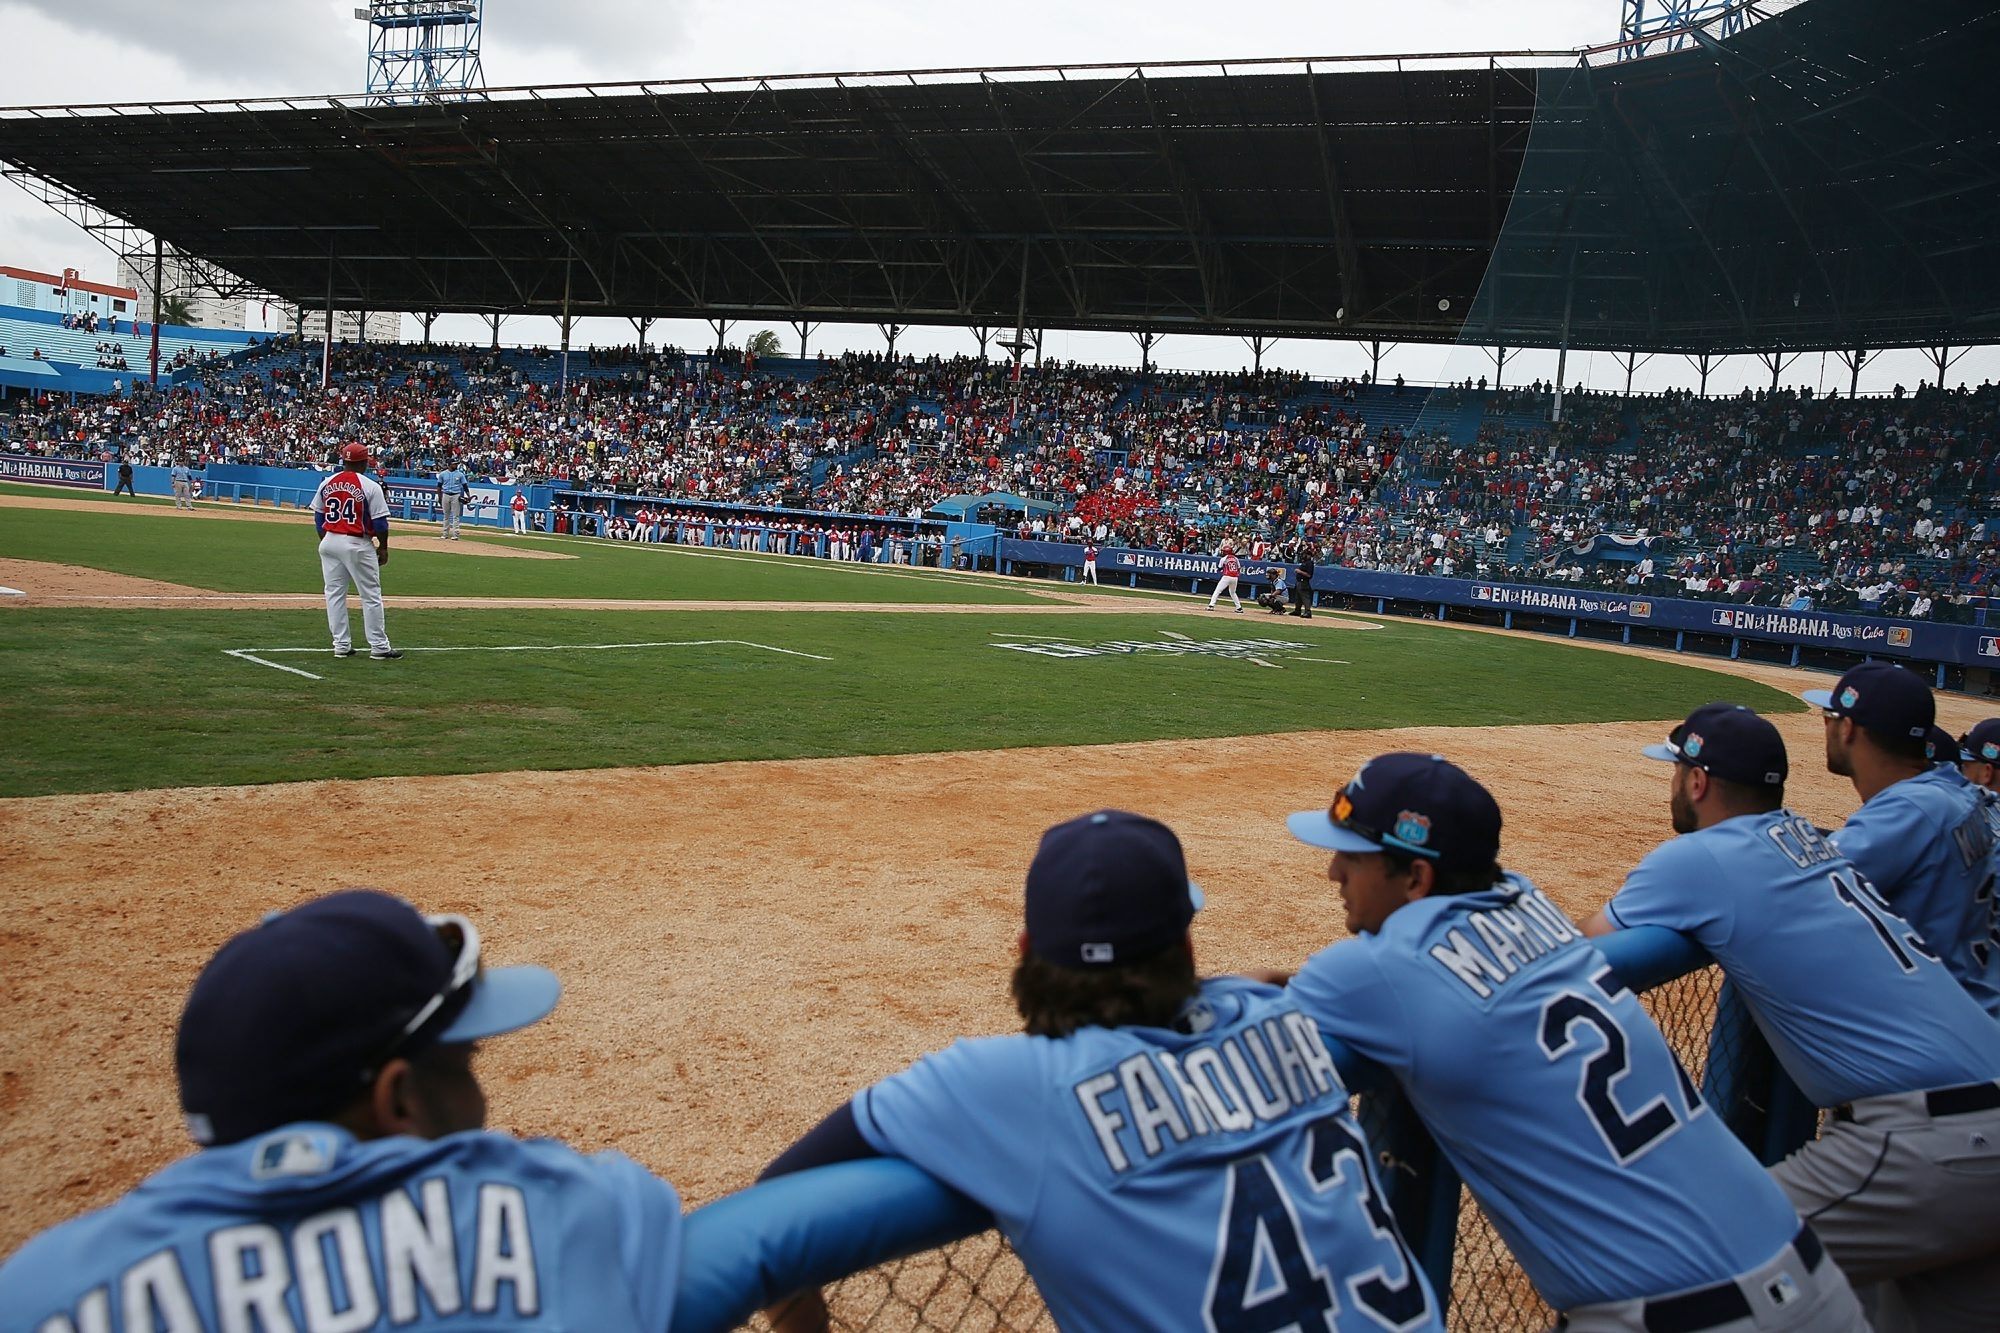 A March 22 exhibition game between the Tampa Bay Rays and the Cuban National team at the Estado Latinoamericano in Havana, Cuba was a step toward soothing relations between the philosophically divided countries. (Getty Images)